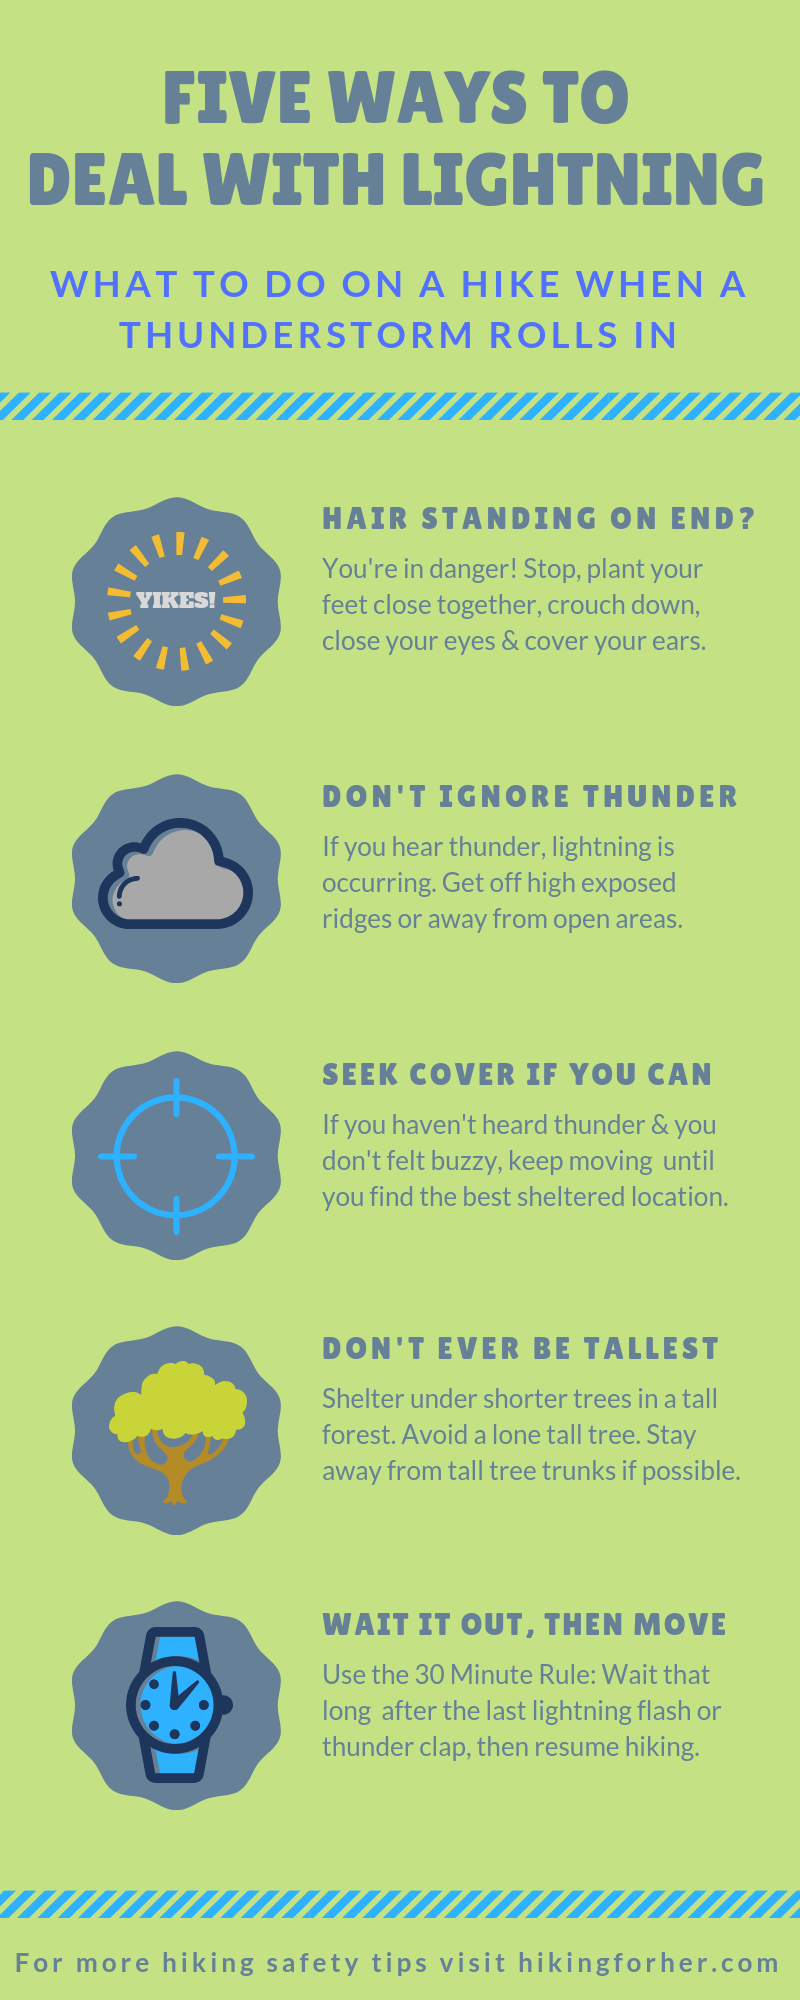 Lightning safety tips for hikers, in a handy infographic from Hiking For Her #lightningsafetytips #hikinginfographic #hikingsafety #hiking #backpacking #outdoorsafety